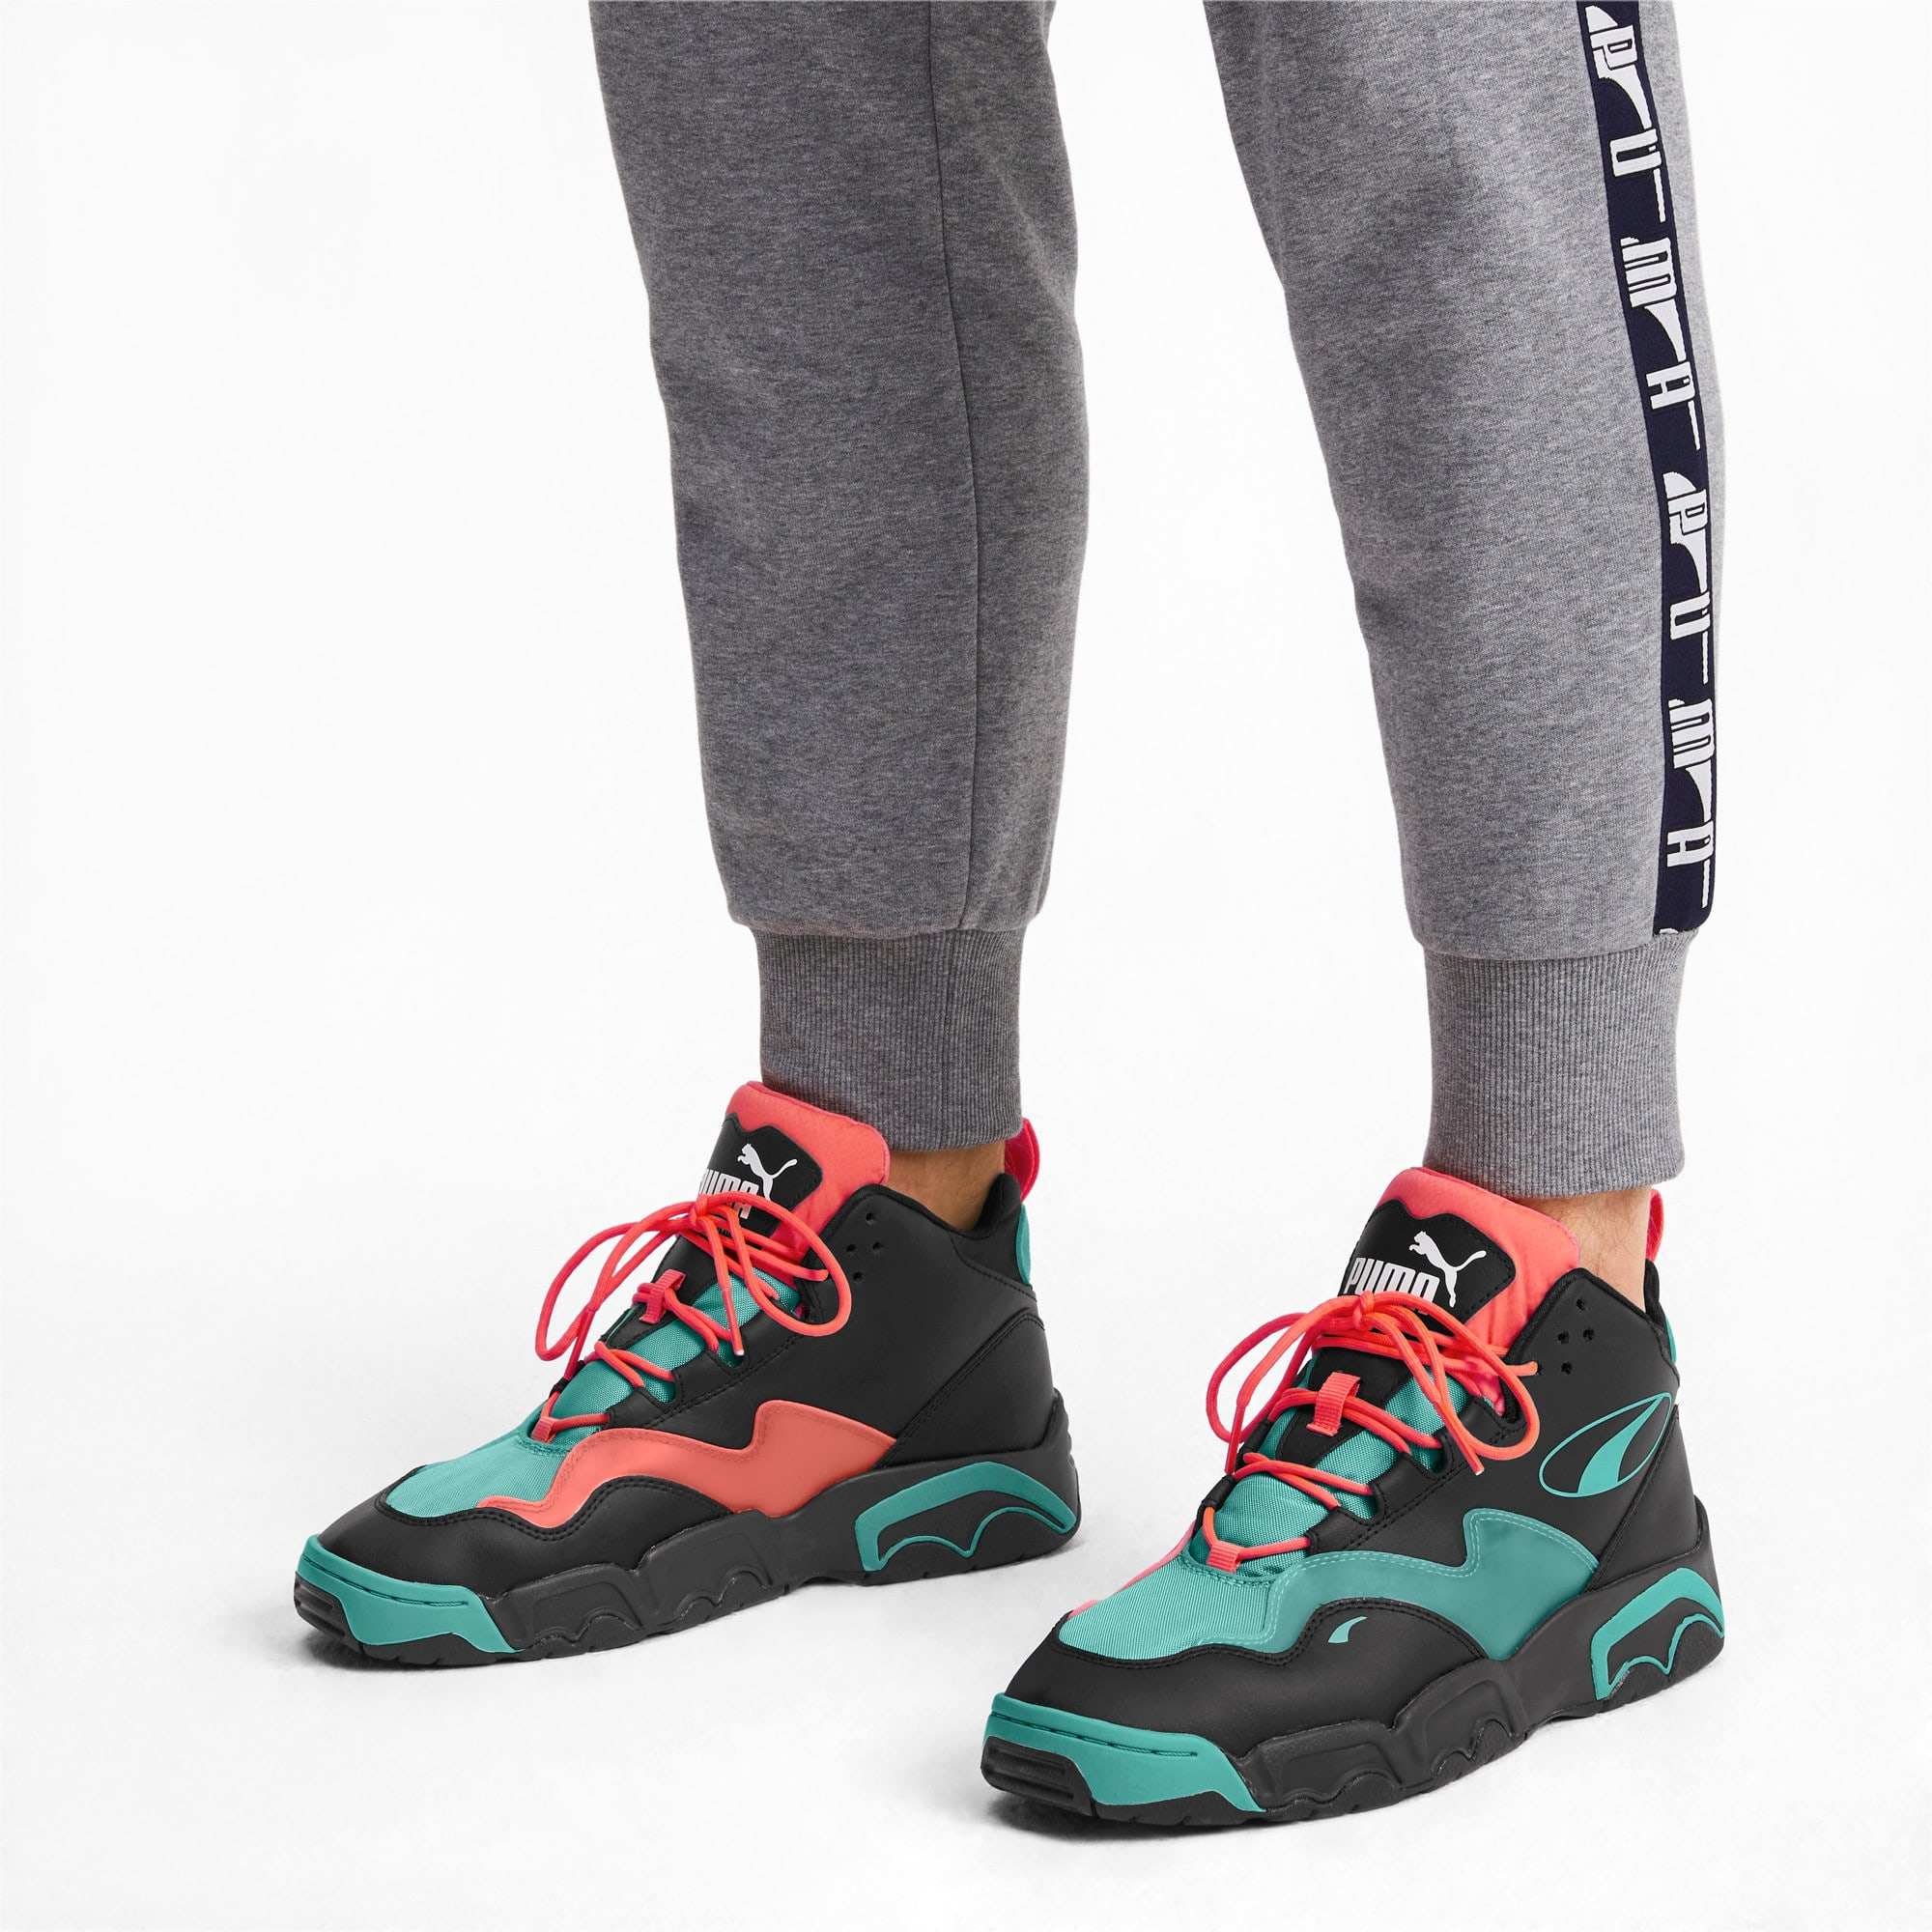 Thumbnail 2 of Source Mid Buzzer Trainers, P Blk-Nrgy Red-BlueTurquoise, medium-IND